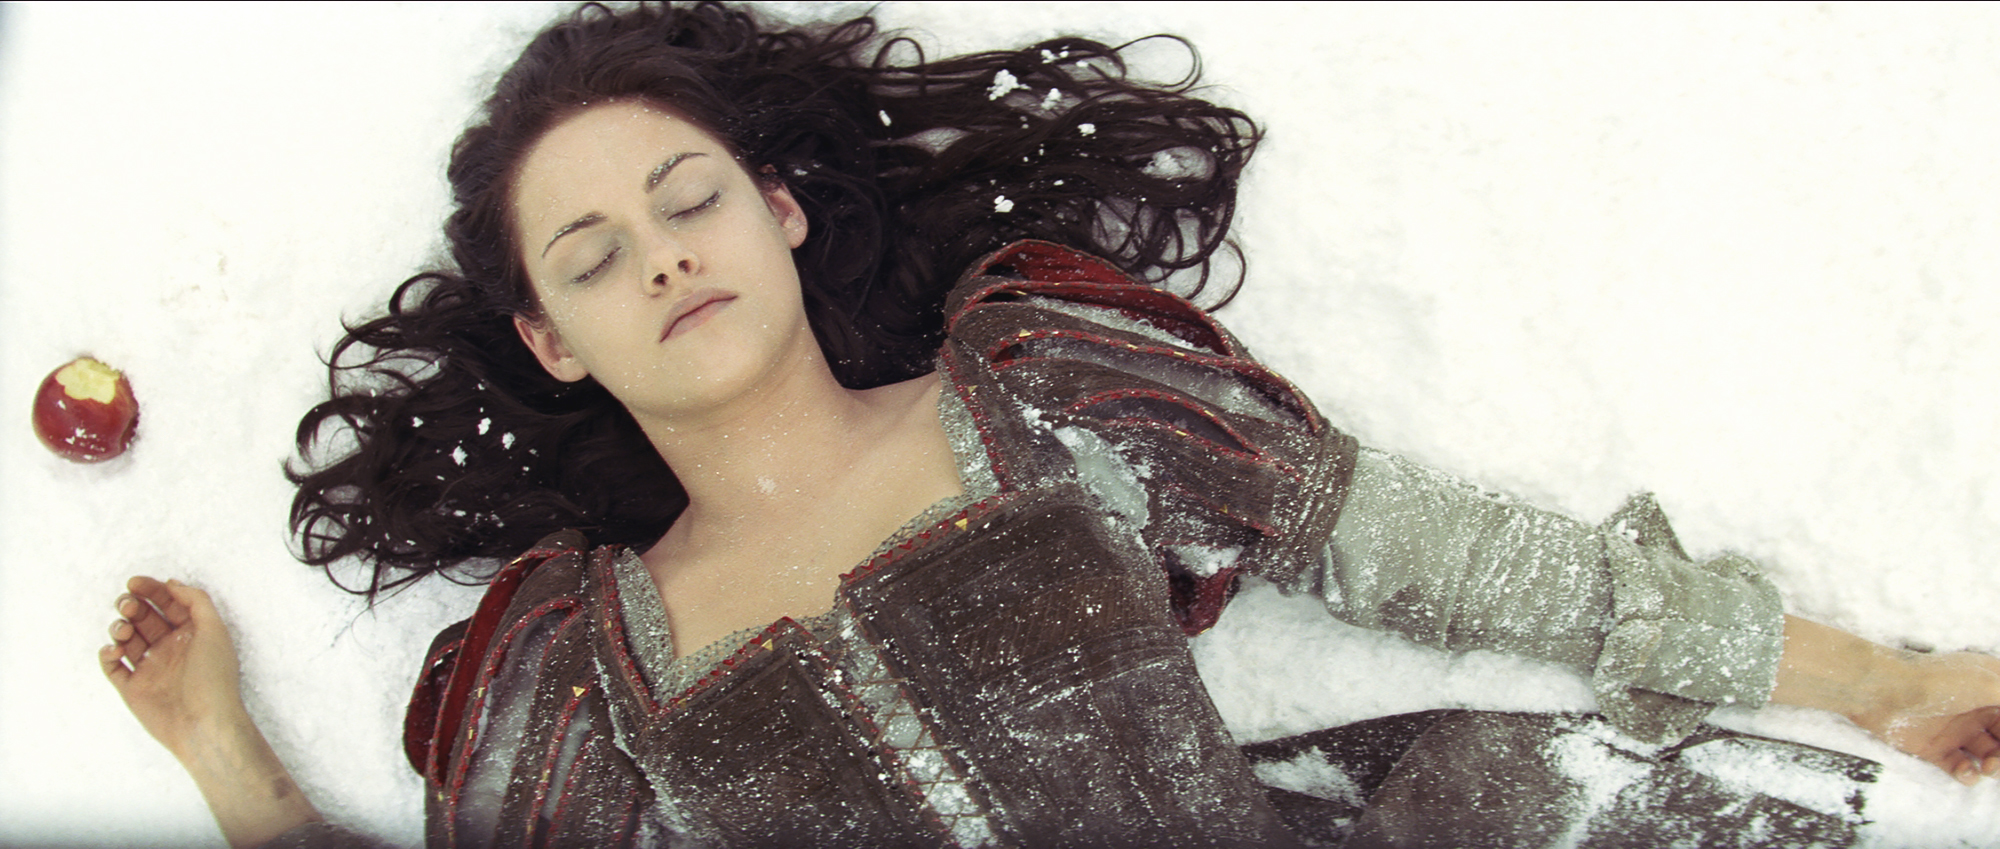 Kristen-Stewart-Snow-White - The Twilight star gave Collins — and costar/evil queen Charlize Theron — a run for their money as Snow White in 2012's Snow White and the Huntsman .